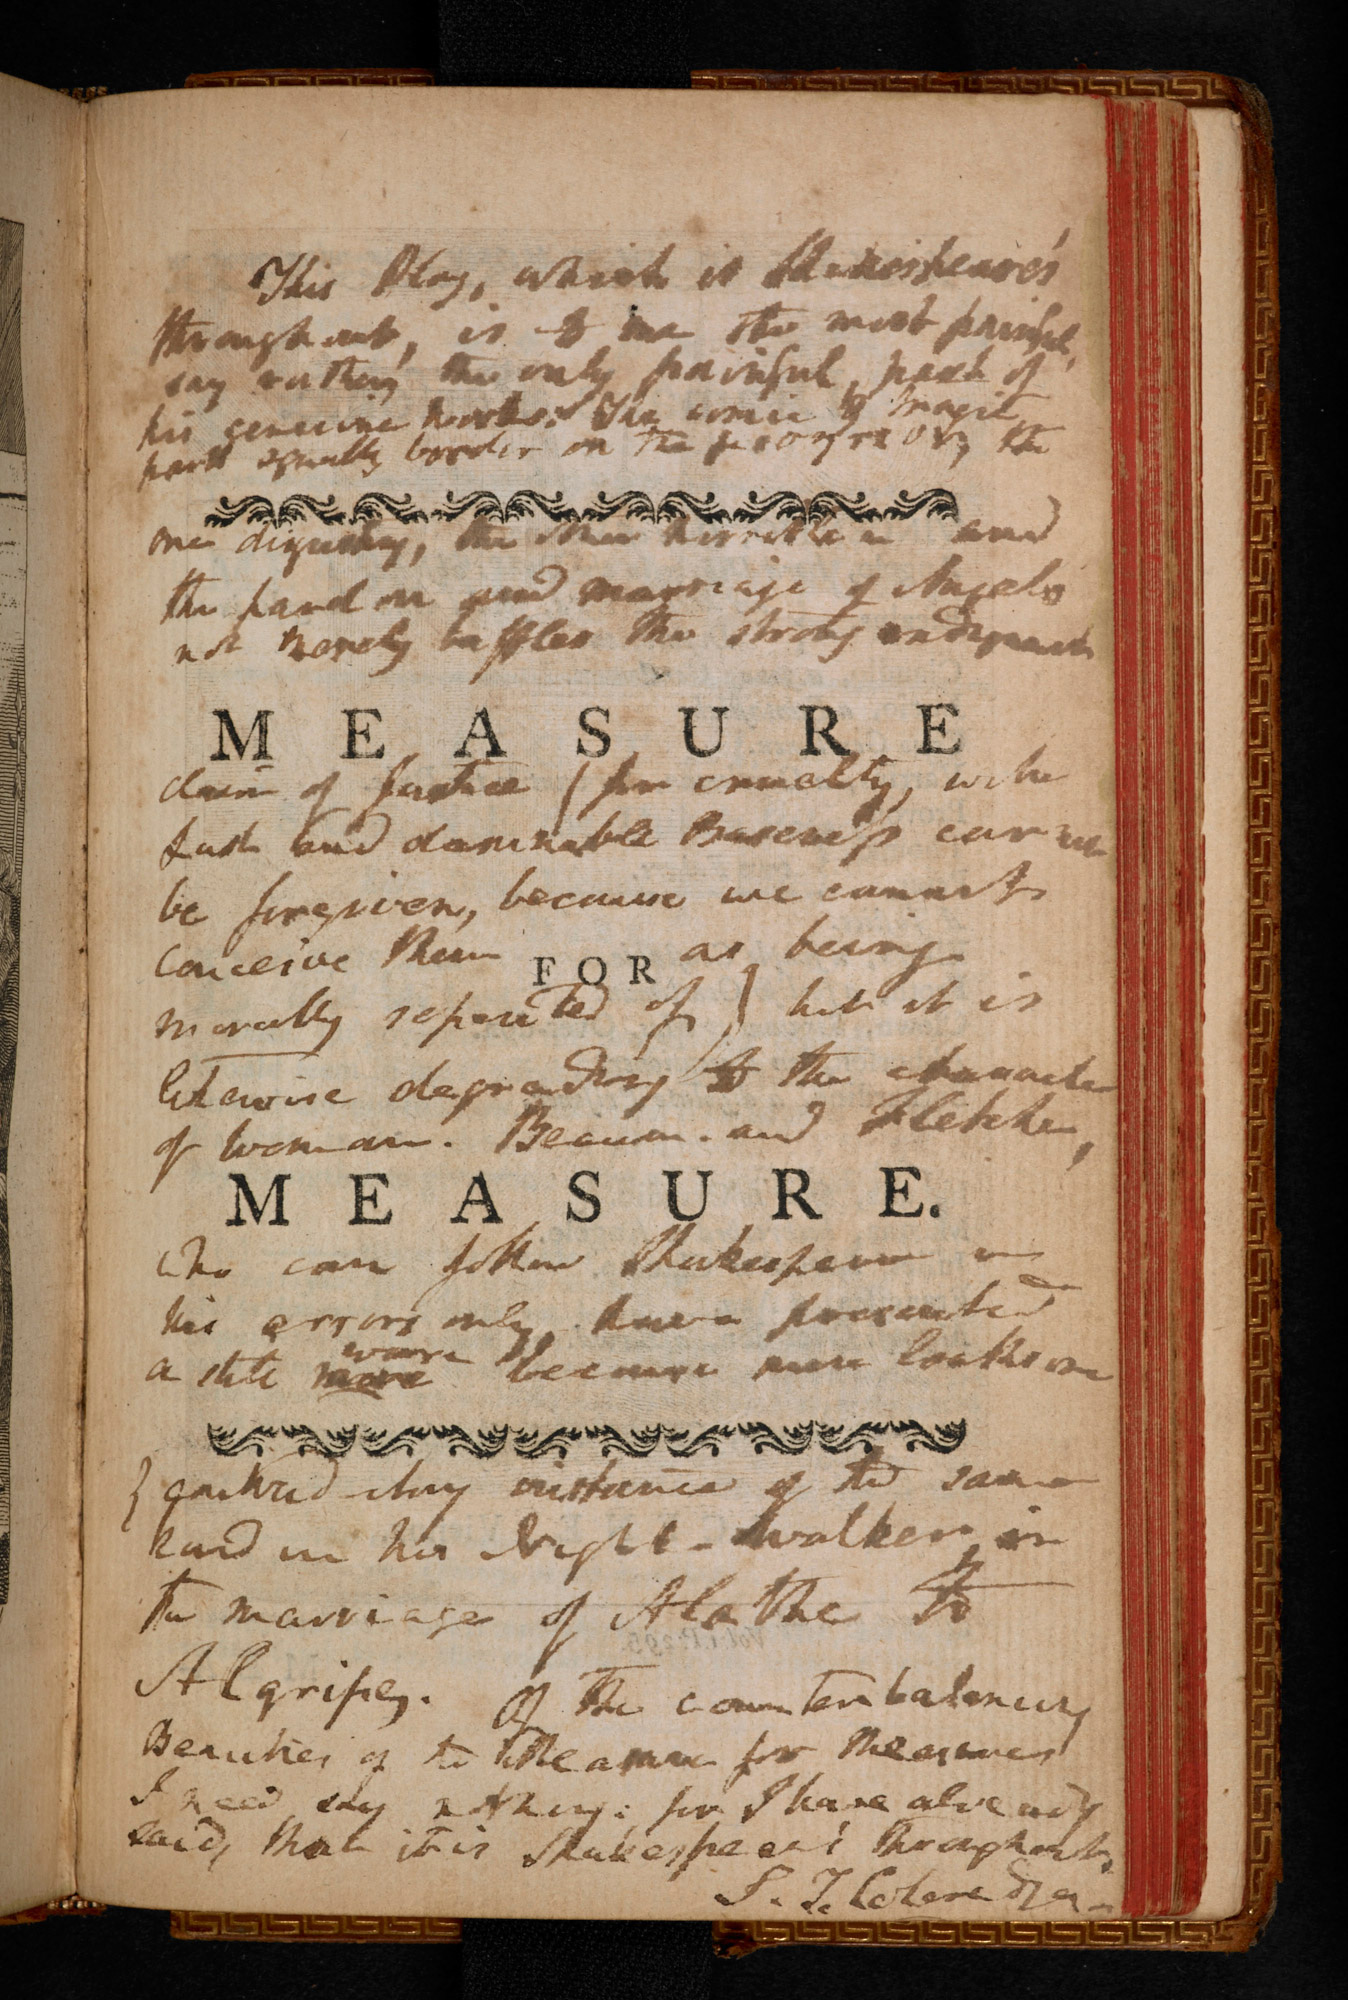 Coleridge's notes on Measure for Measure